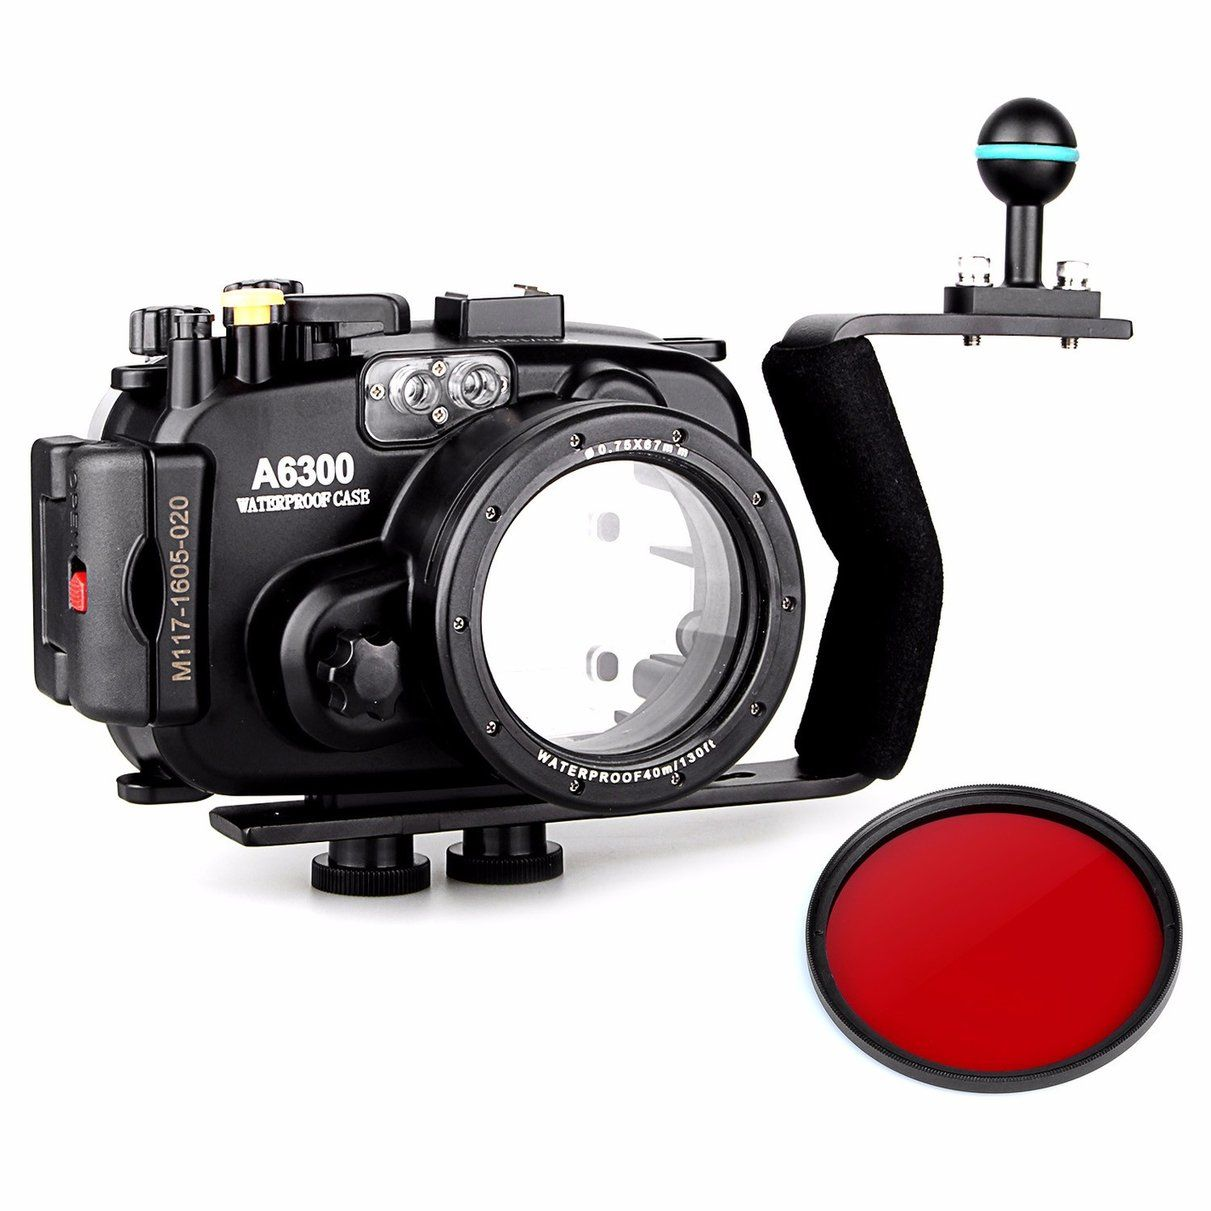 Meikon 40m/130ft Waterproof Underwater Camera Housing Case for A6300 + 16-50mm Lens + Aluminium Diving handle +67mm Red Filter